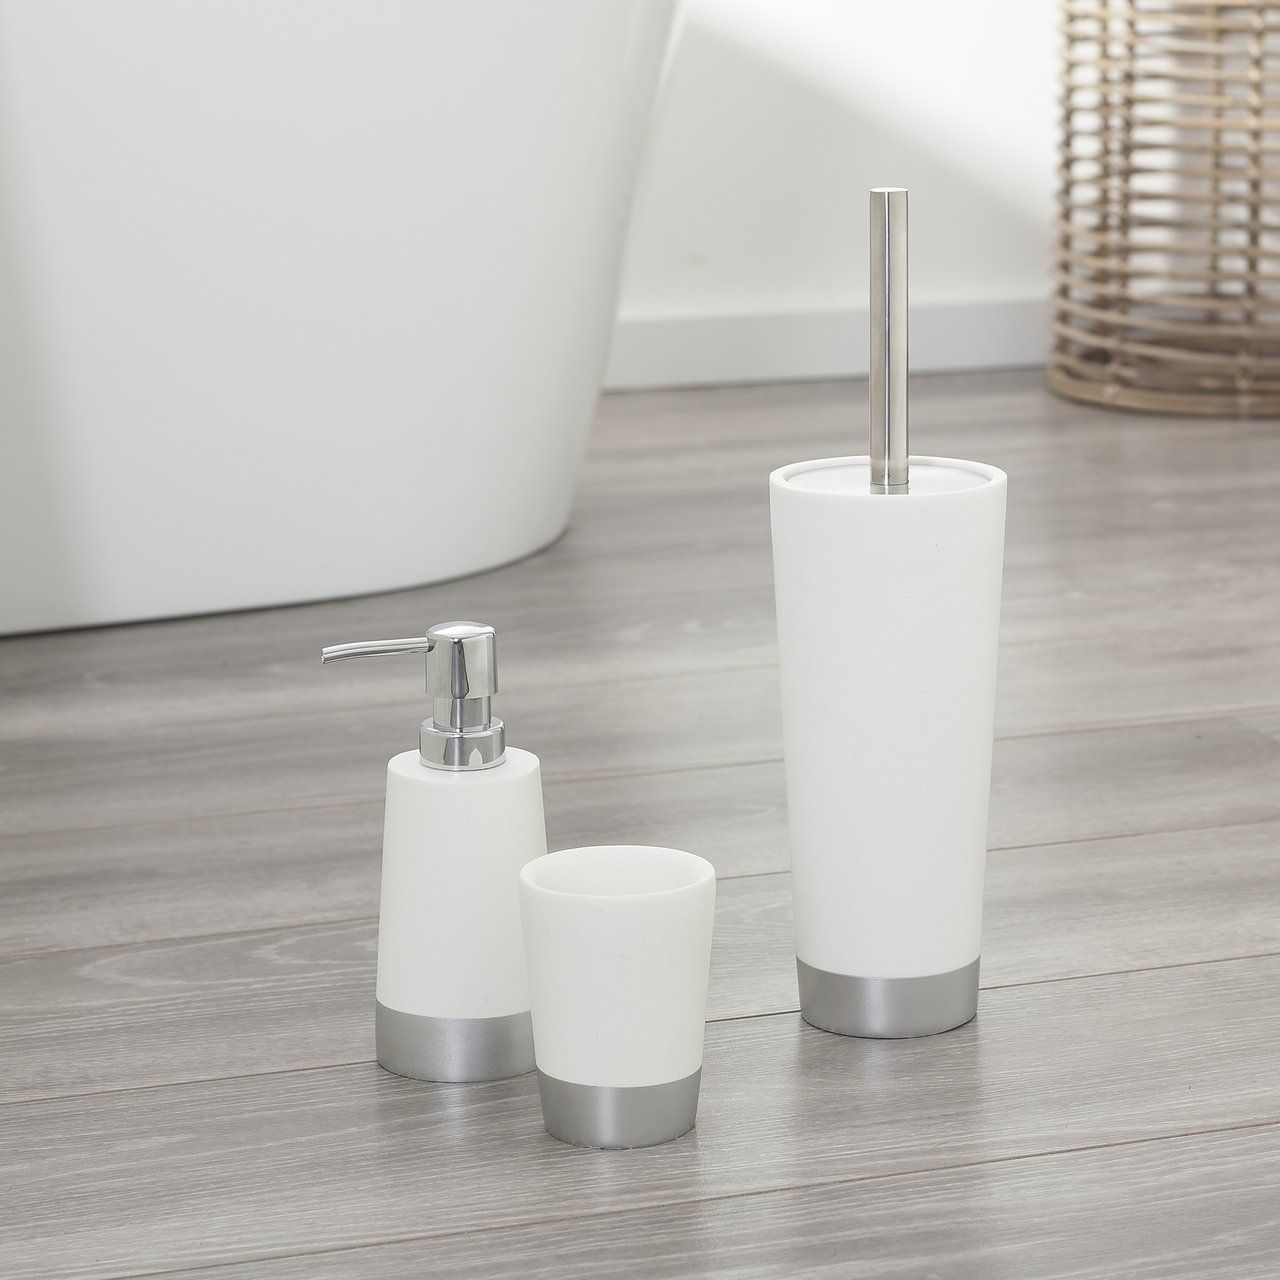 Sealskin 3 Piece Bathroom Accessories Set Glossy White And Silver